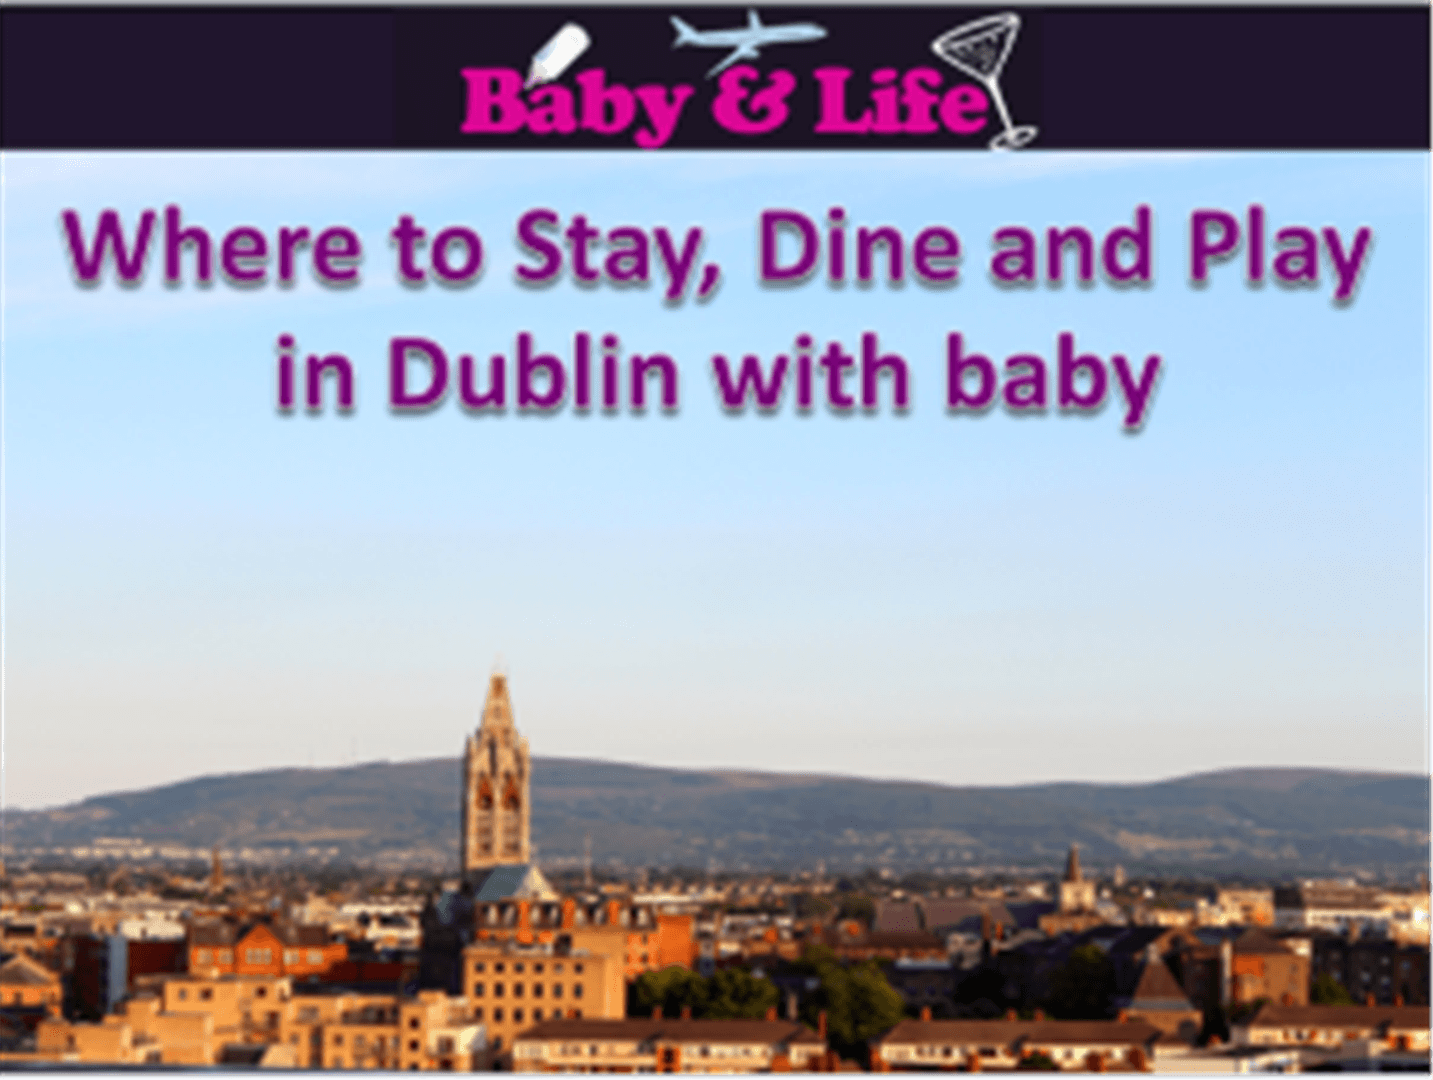 Stay, Dine and Play in Dublin